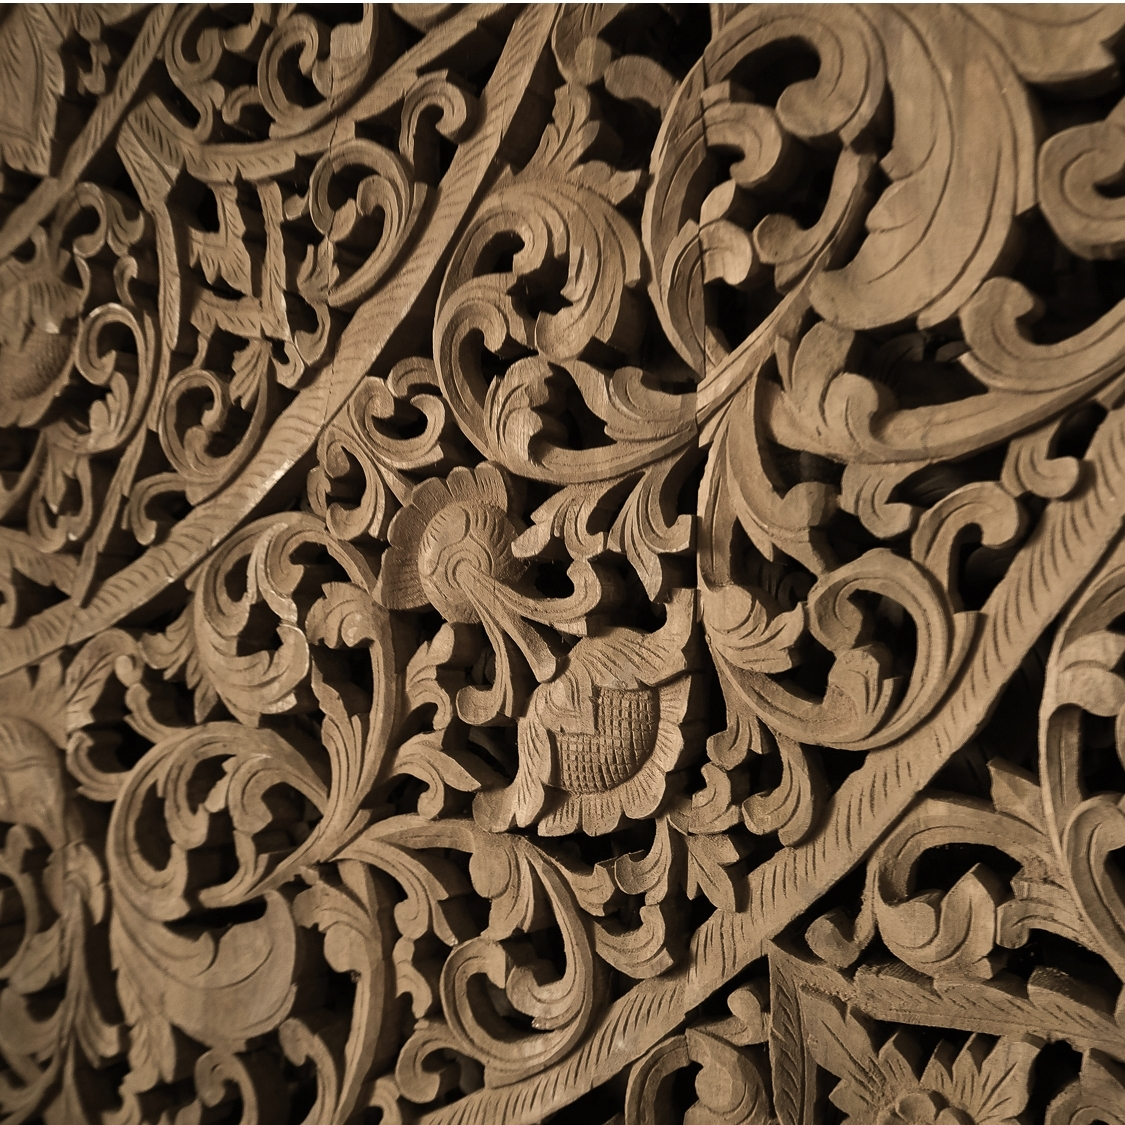 Wood Carved Wall Art Roselawnlutheran, Carved Wood Wall Art – Swinki Throughout Wood Carved Wall Art (View 7 of 20)